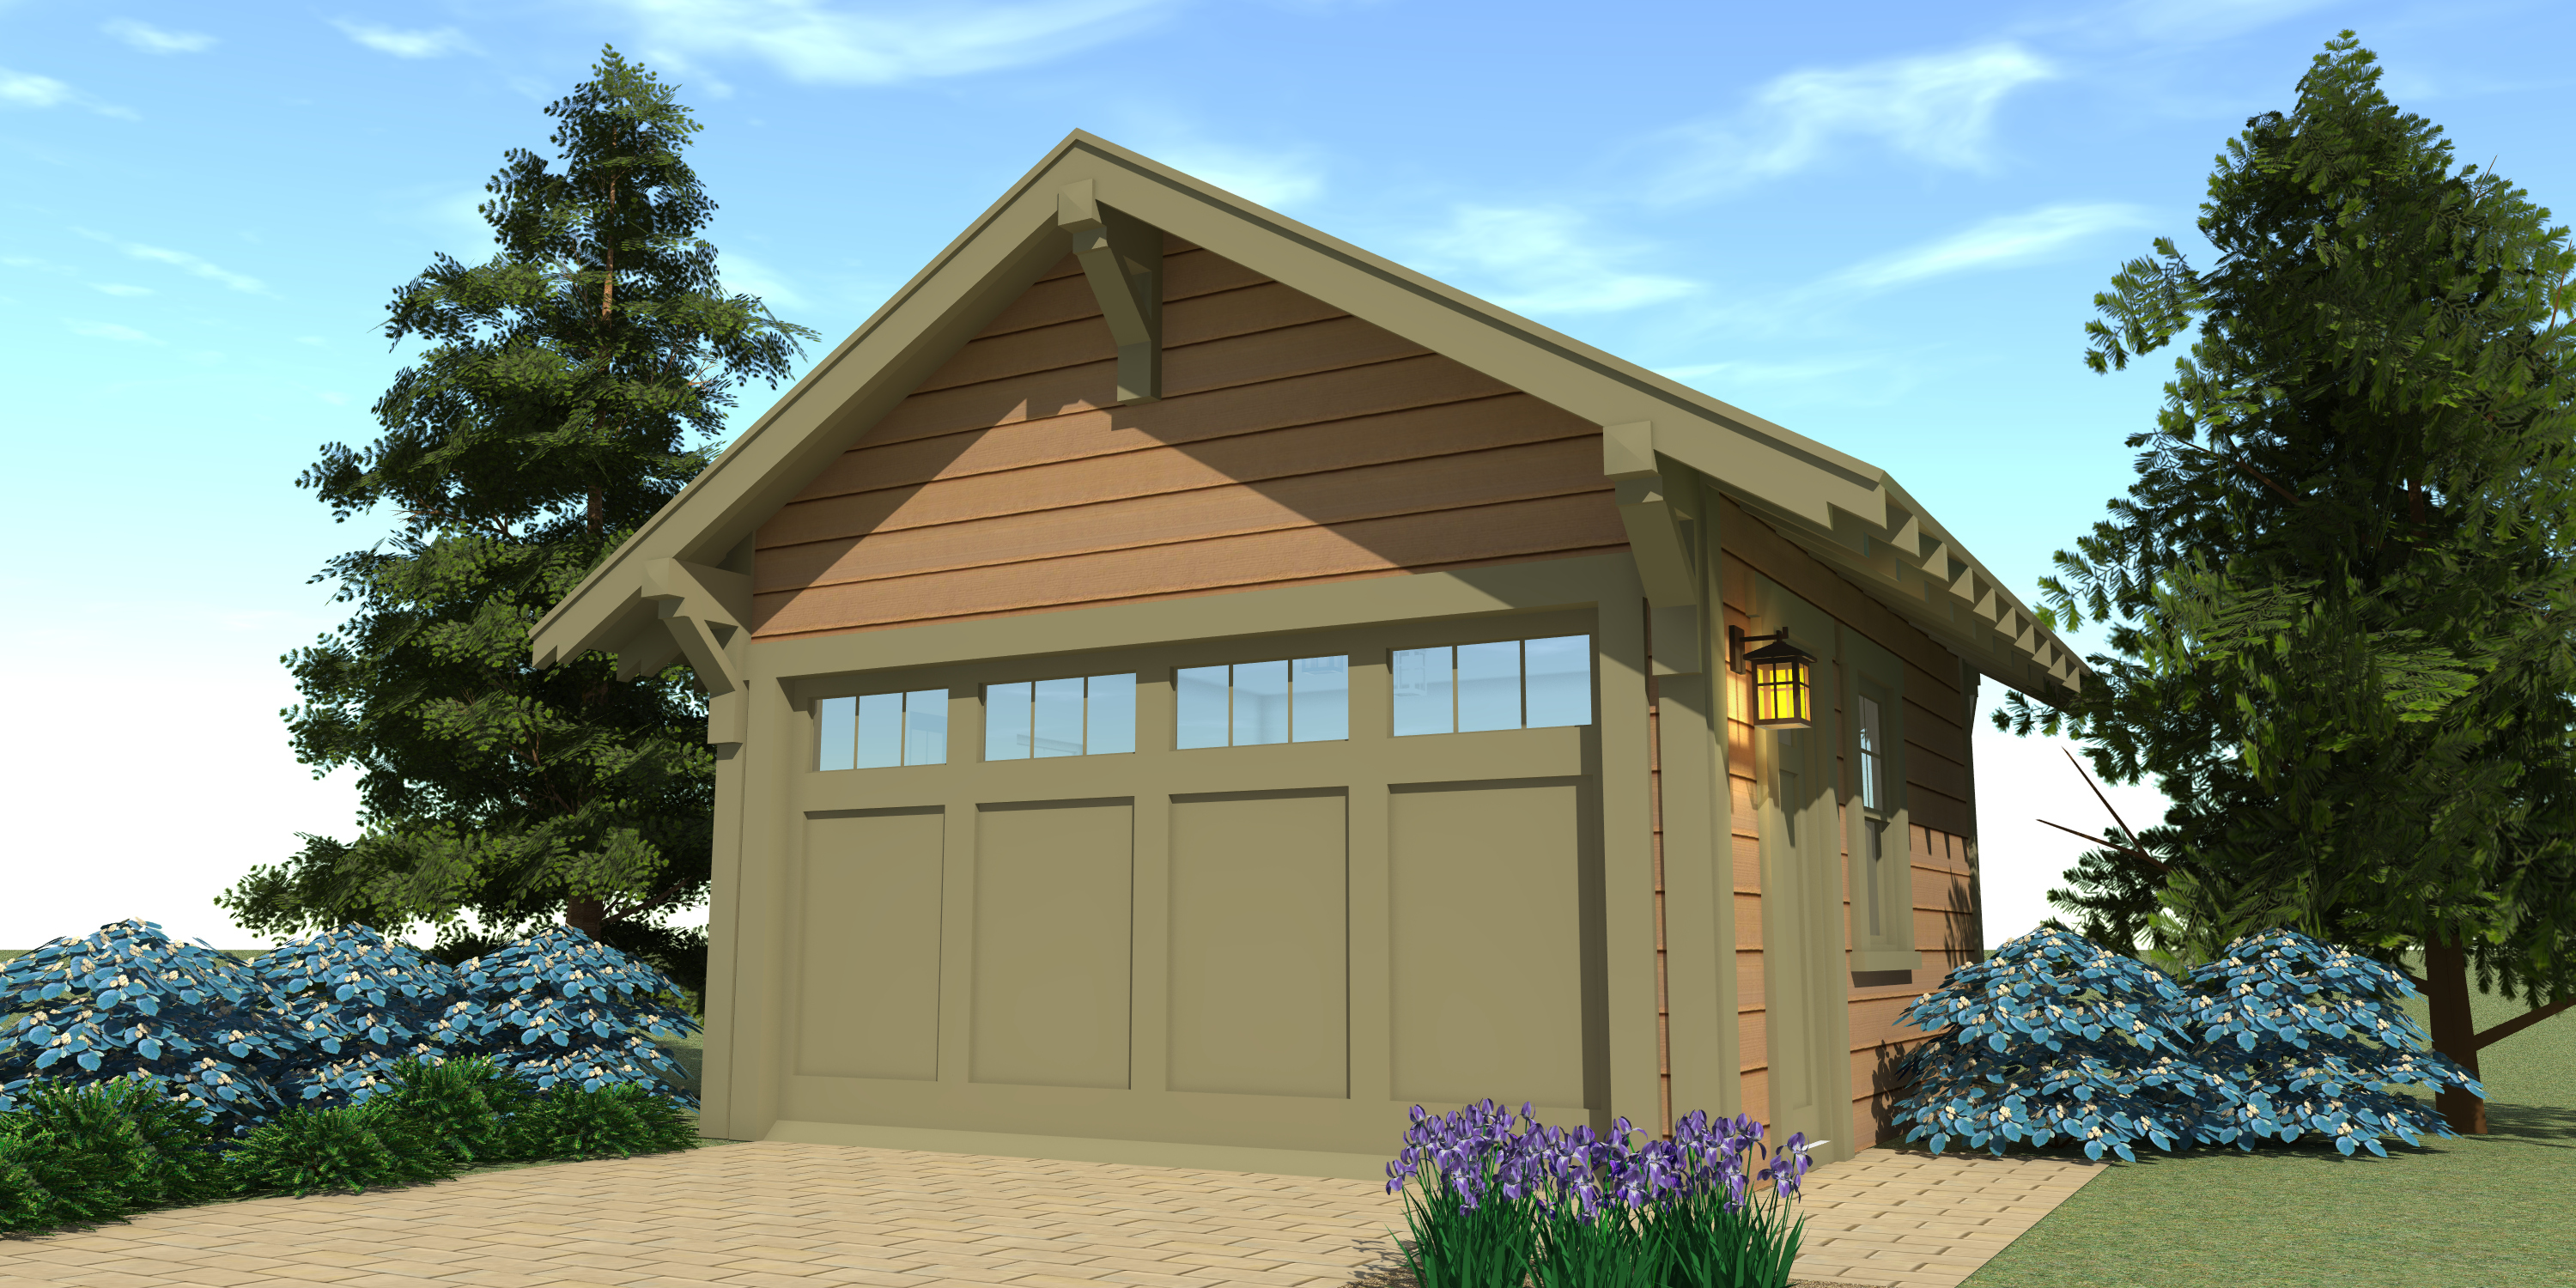 Craftsman garage 1 plan tyree house plans for Arts and crafts garage